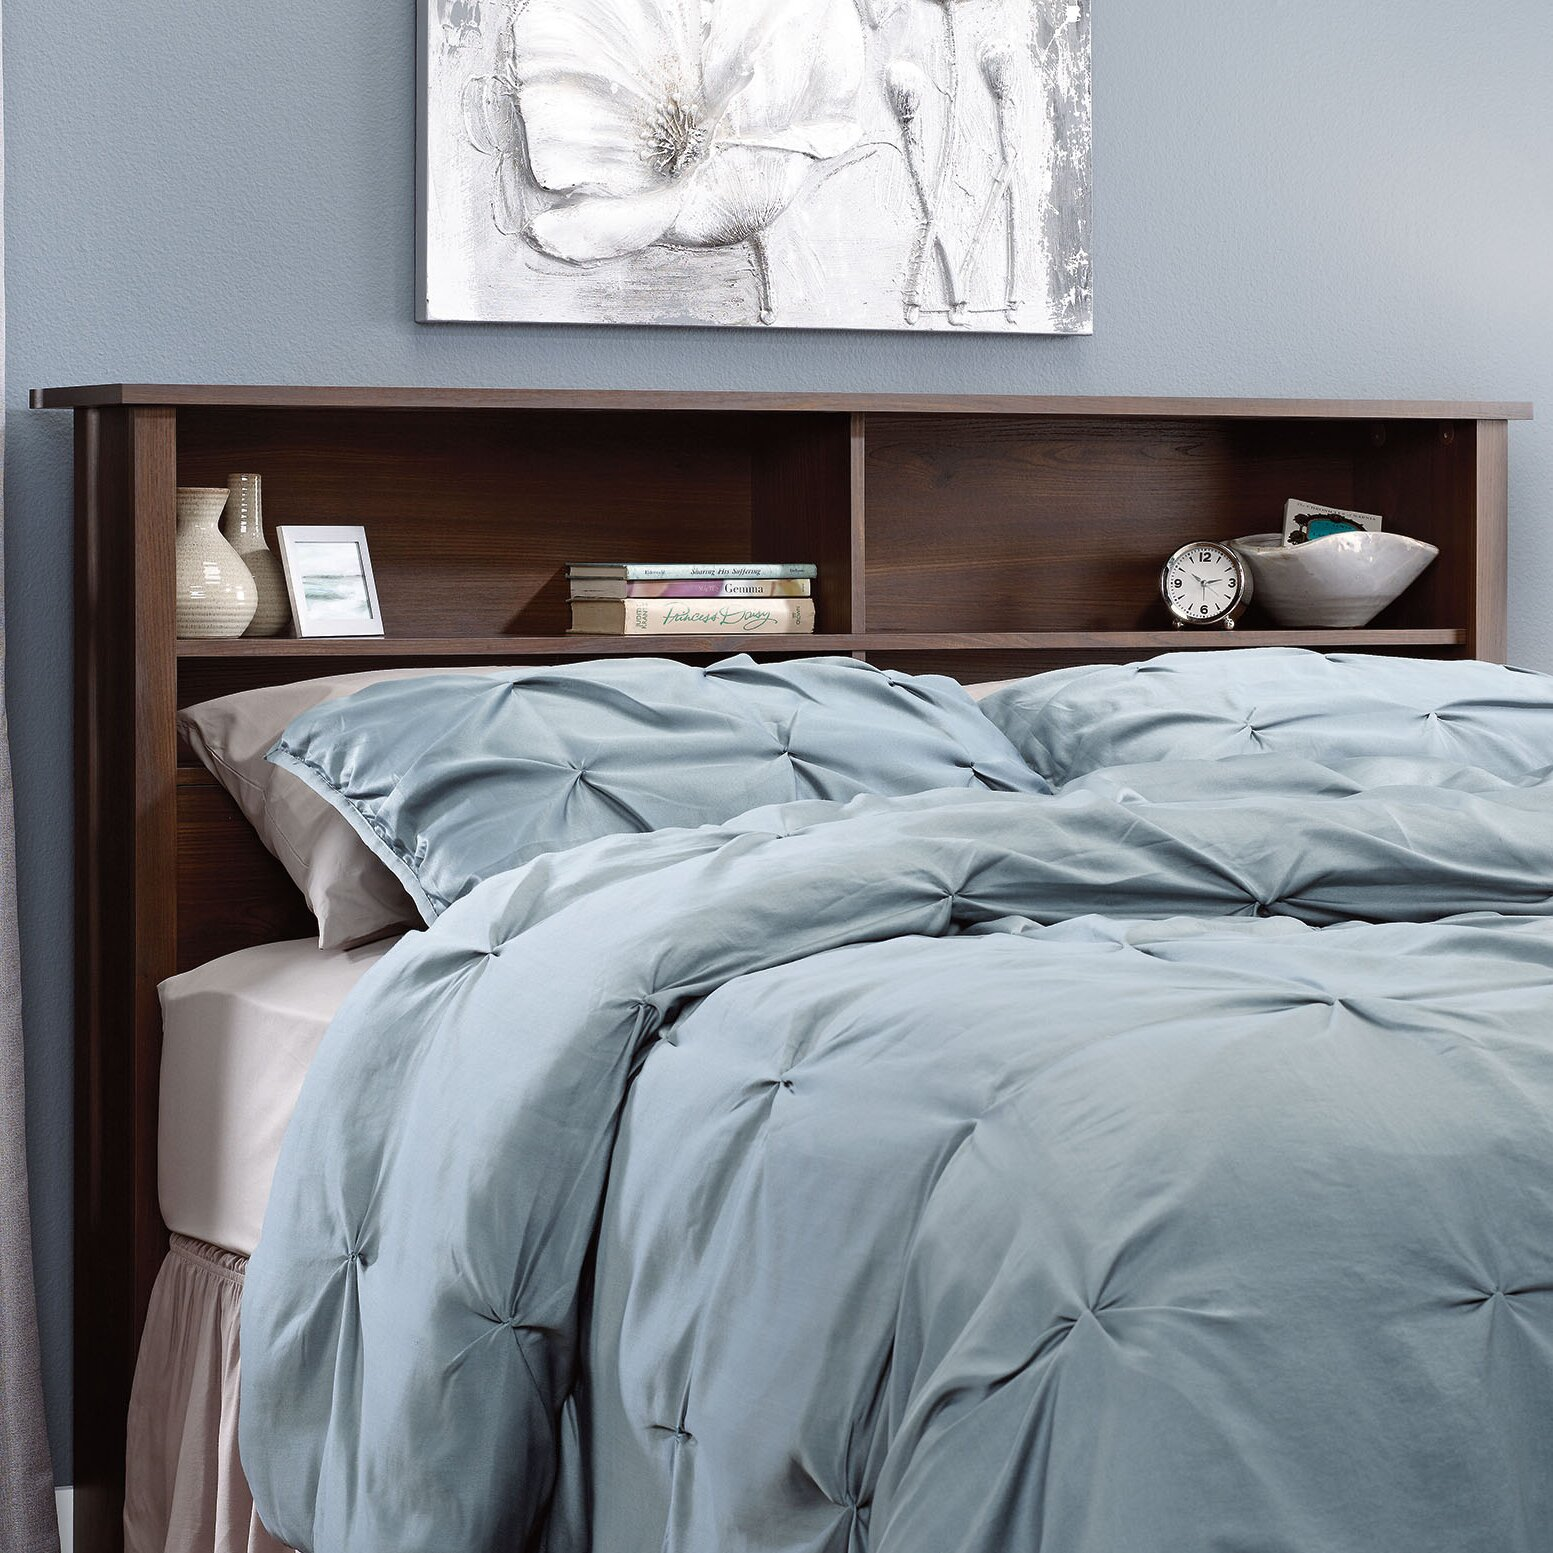 Darby Home Co Coombs Full/Queen Wood Bookcase Headboard